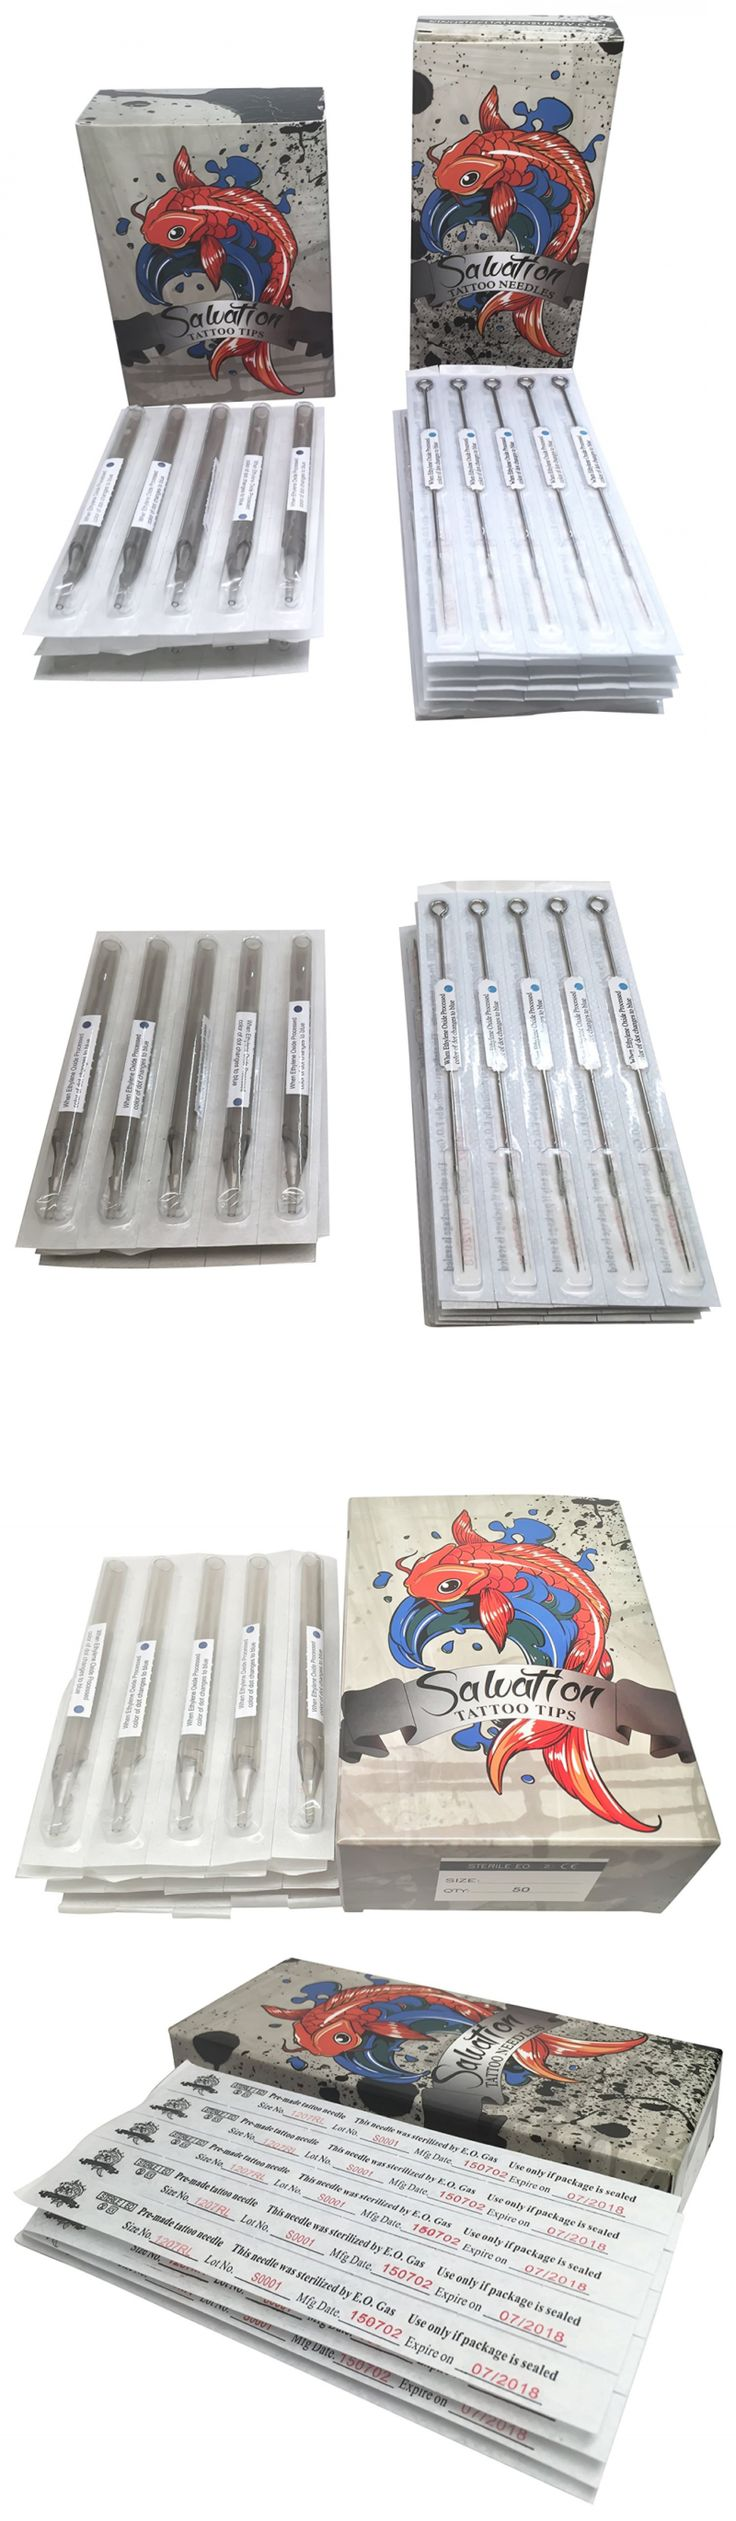 Tattoo Needles Grips and Tips: Tattoo Needles And Tubes Combo - 100 Pcs Each - Assorted Needle Box And Disposab -> BUY IT NOW ONLY: $35.62 on eBay!